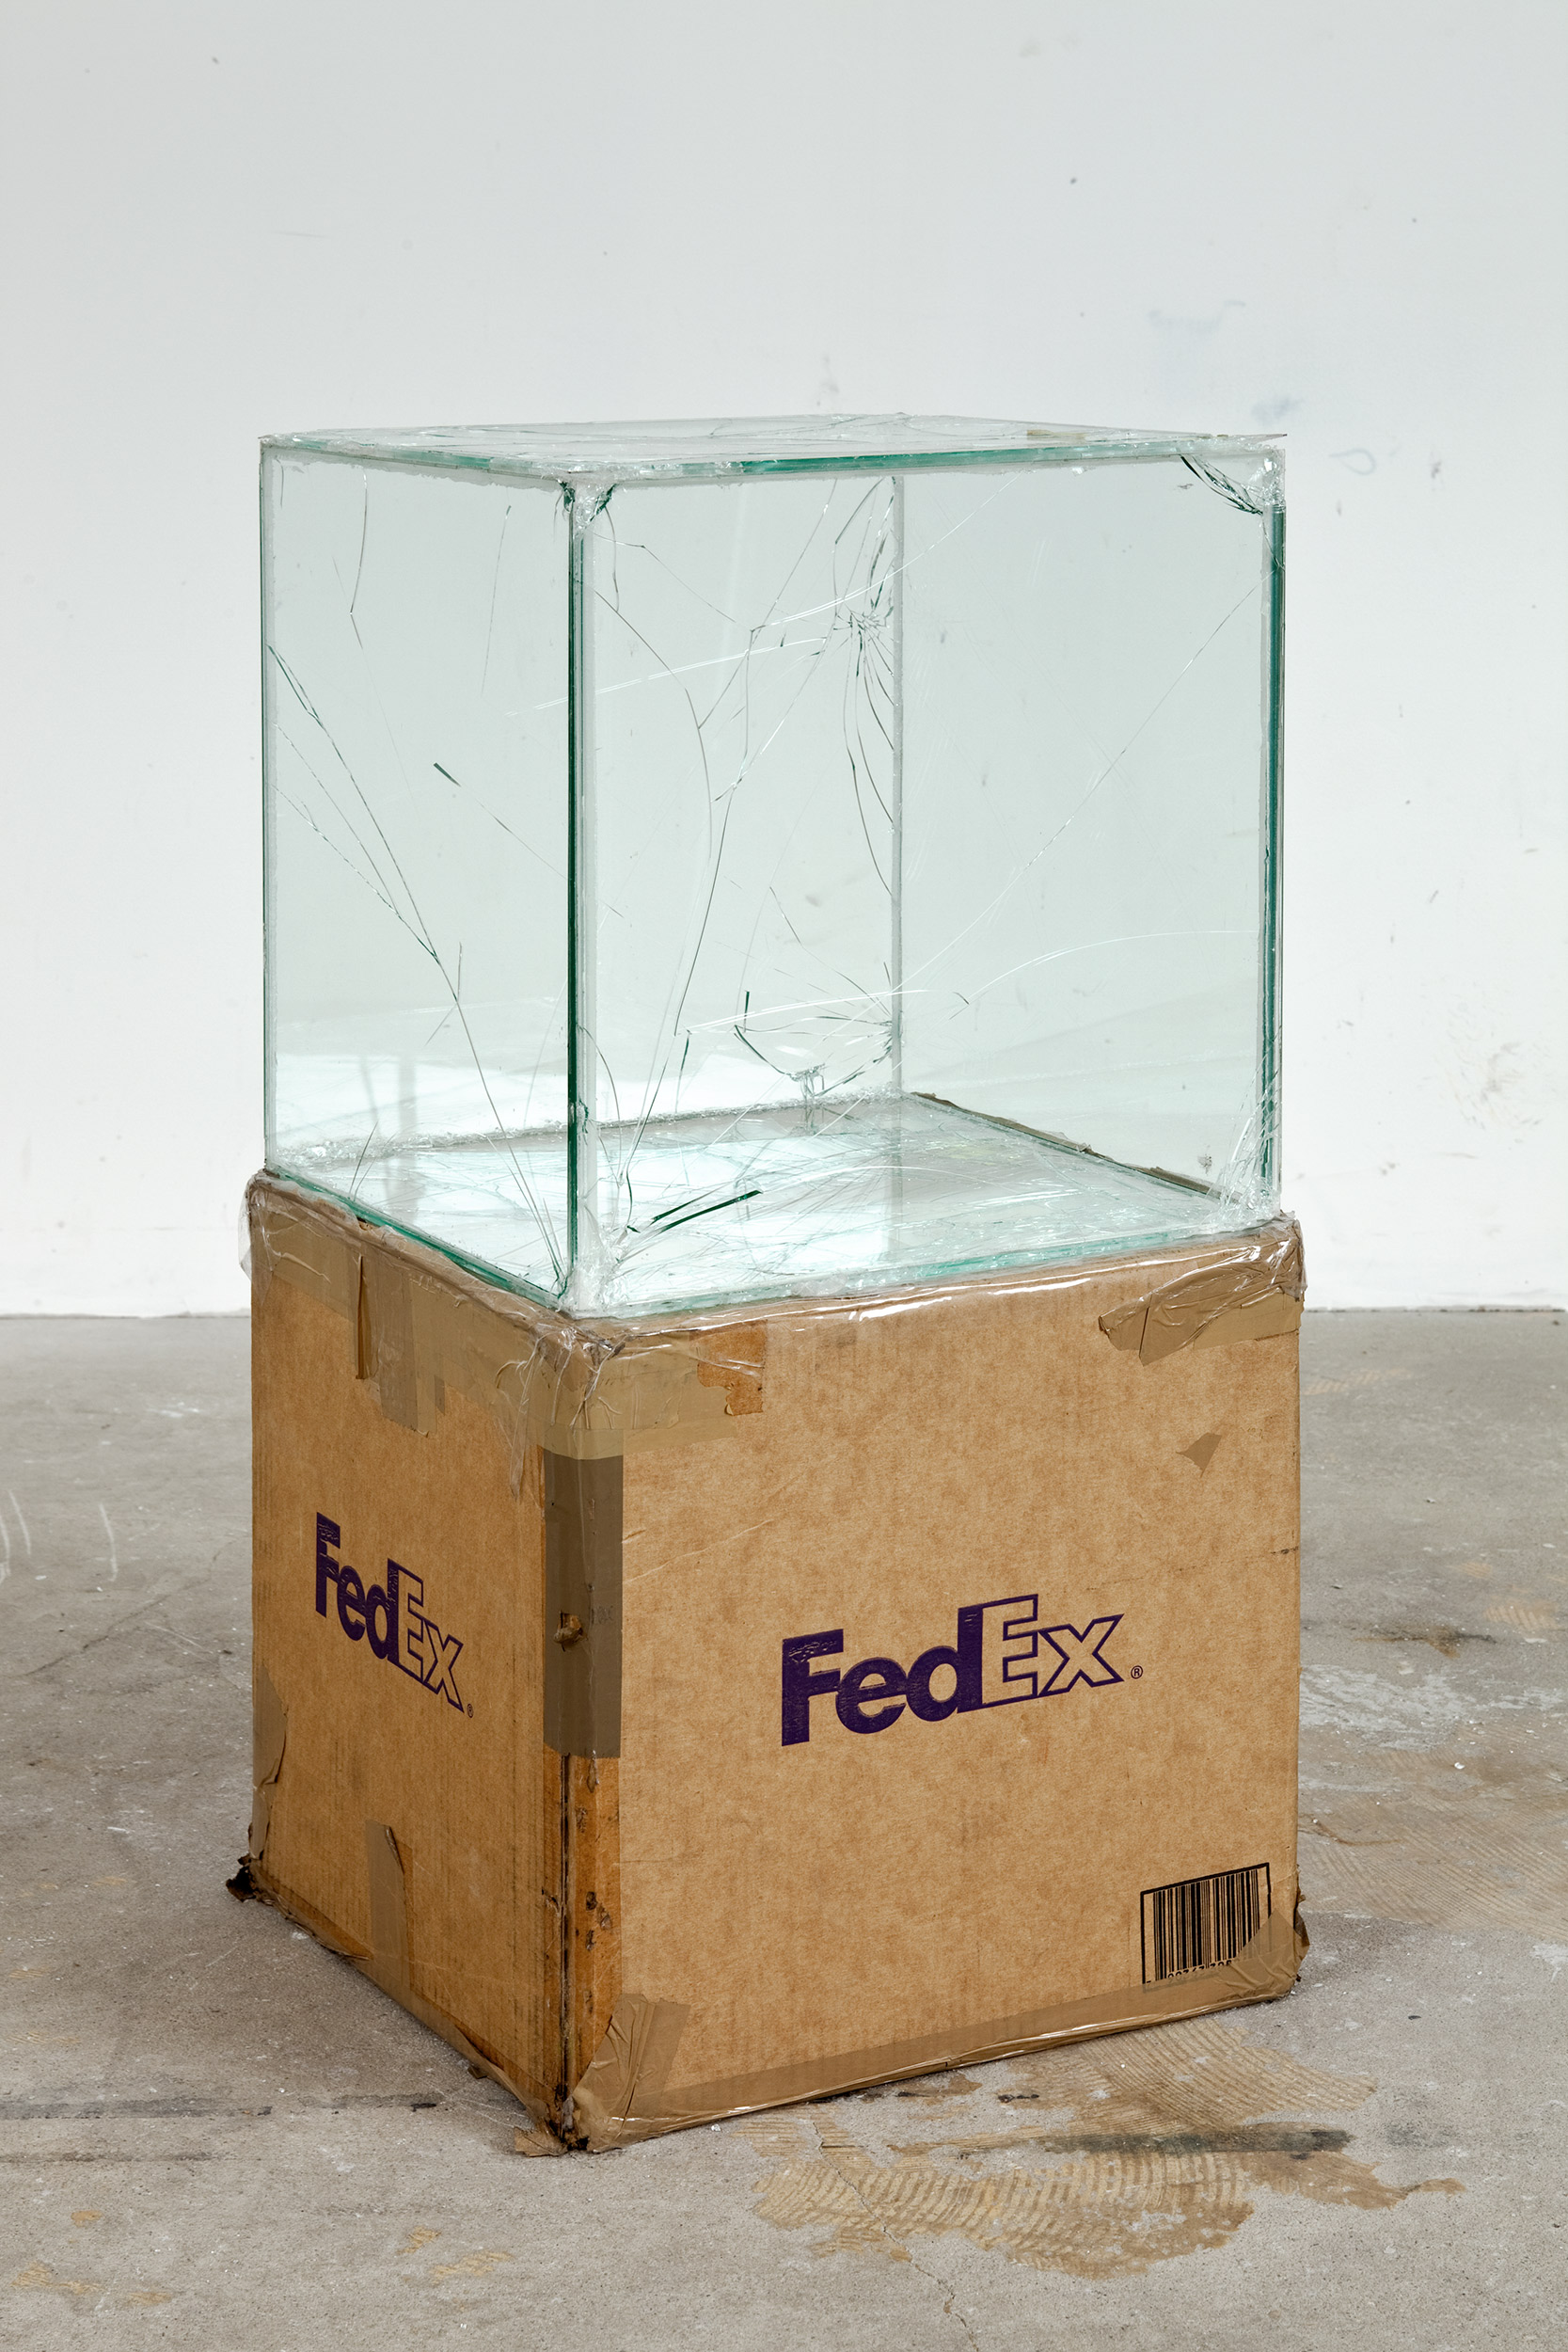 FedEx® Kraft Box  © 2005 FEDEX 330504 10/05 SSCC, Priority Overnight, Los Angeles-Miami trk#865344981299, October 29–30, 2008, Priority Overnight, Miami–Ann Arbor trk#861049125115, March 03–04, 2009, Standard Overnight, Ann Arbor–Los Angeles trk#868274625749, July 09–10, 2009, Standard Overnight, Los Angeles–San Francisco trk#878069766471, August 27–28, 2009, Standard Overnight, San Francisco–Los Angeles trk#870342520145, November 12–13, 2009, International Priority, Los Angeles–London trk#798269222978, April 10–12, 2012    2008–   Laminated glass, FedEx shipping box, accrued FedEx shipping and tracking labels, silicone, metal, tape  16 x 16 x 16 inches   Pulley, Cogwheels, Mirrors, and Windows, 2009